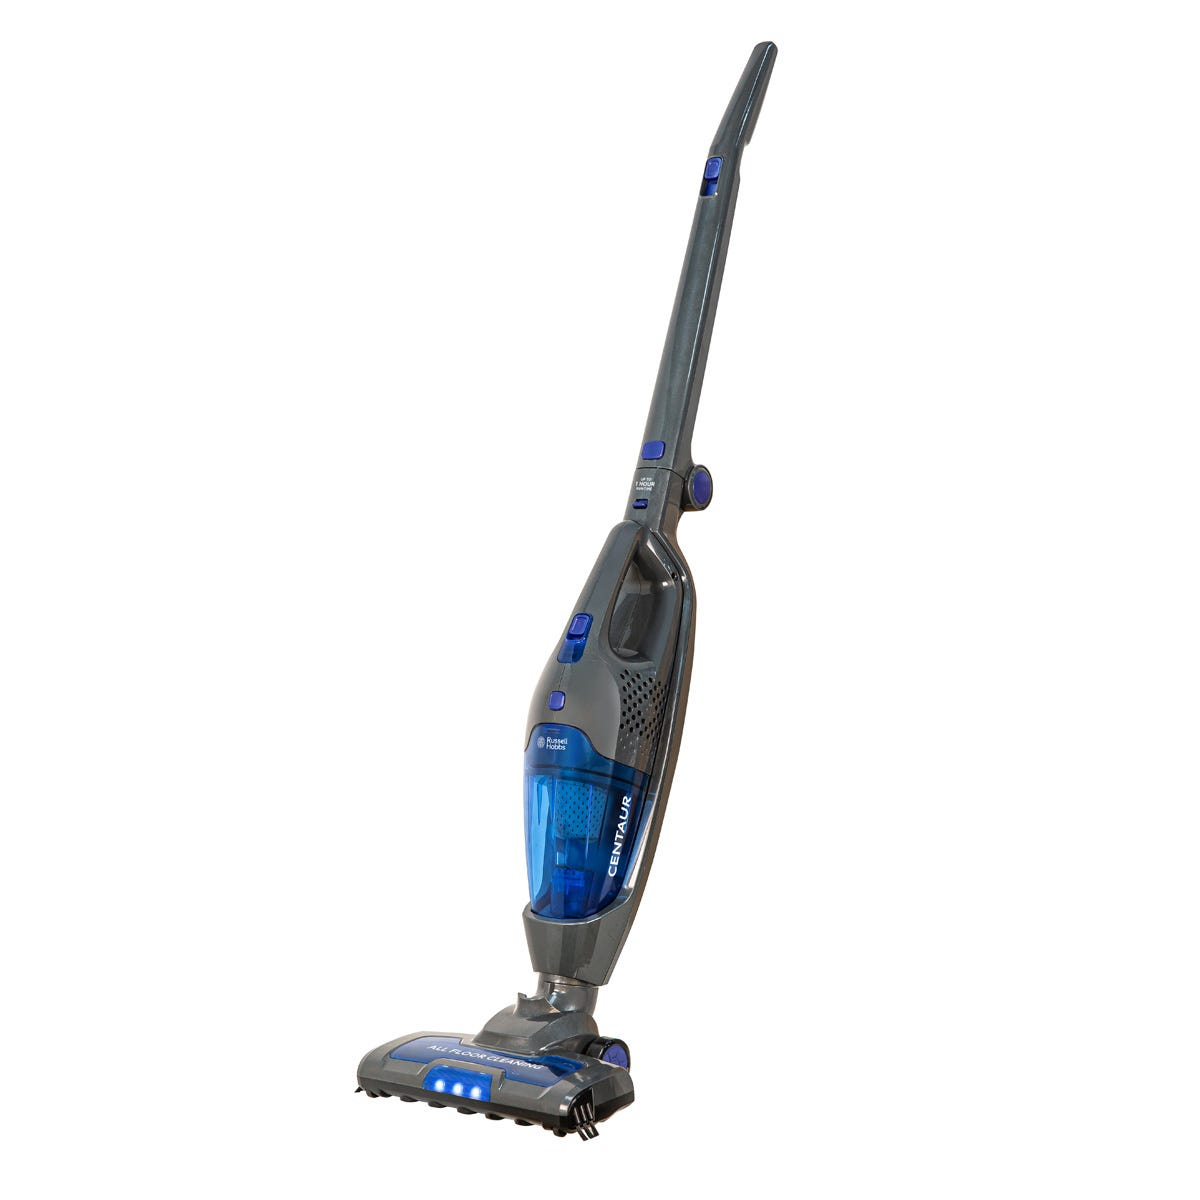 Russell Hobbs RHSV2211 Centaur 22V 0.5L Cordless 2-in-1 Stick Vacuum Cleaner - Grey and Blue